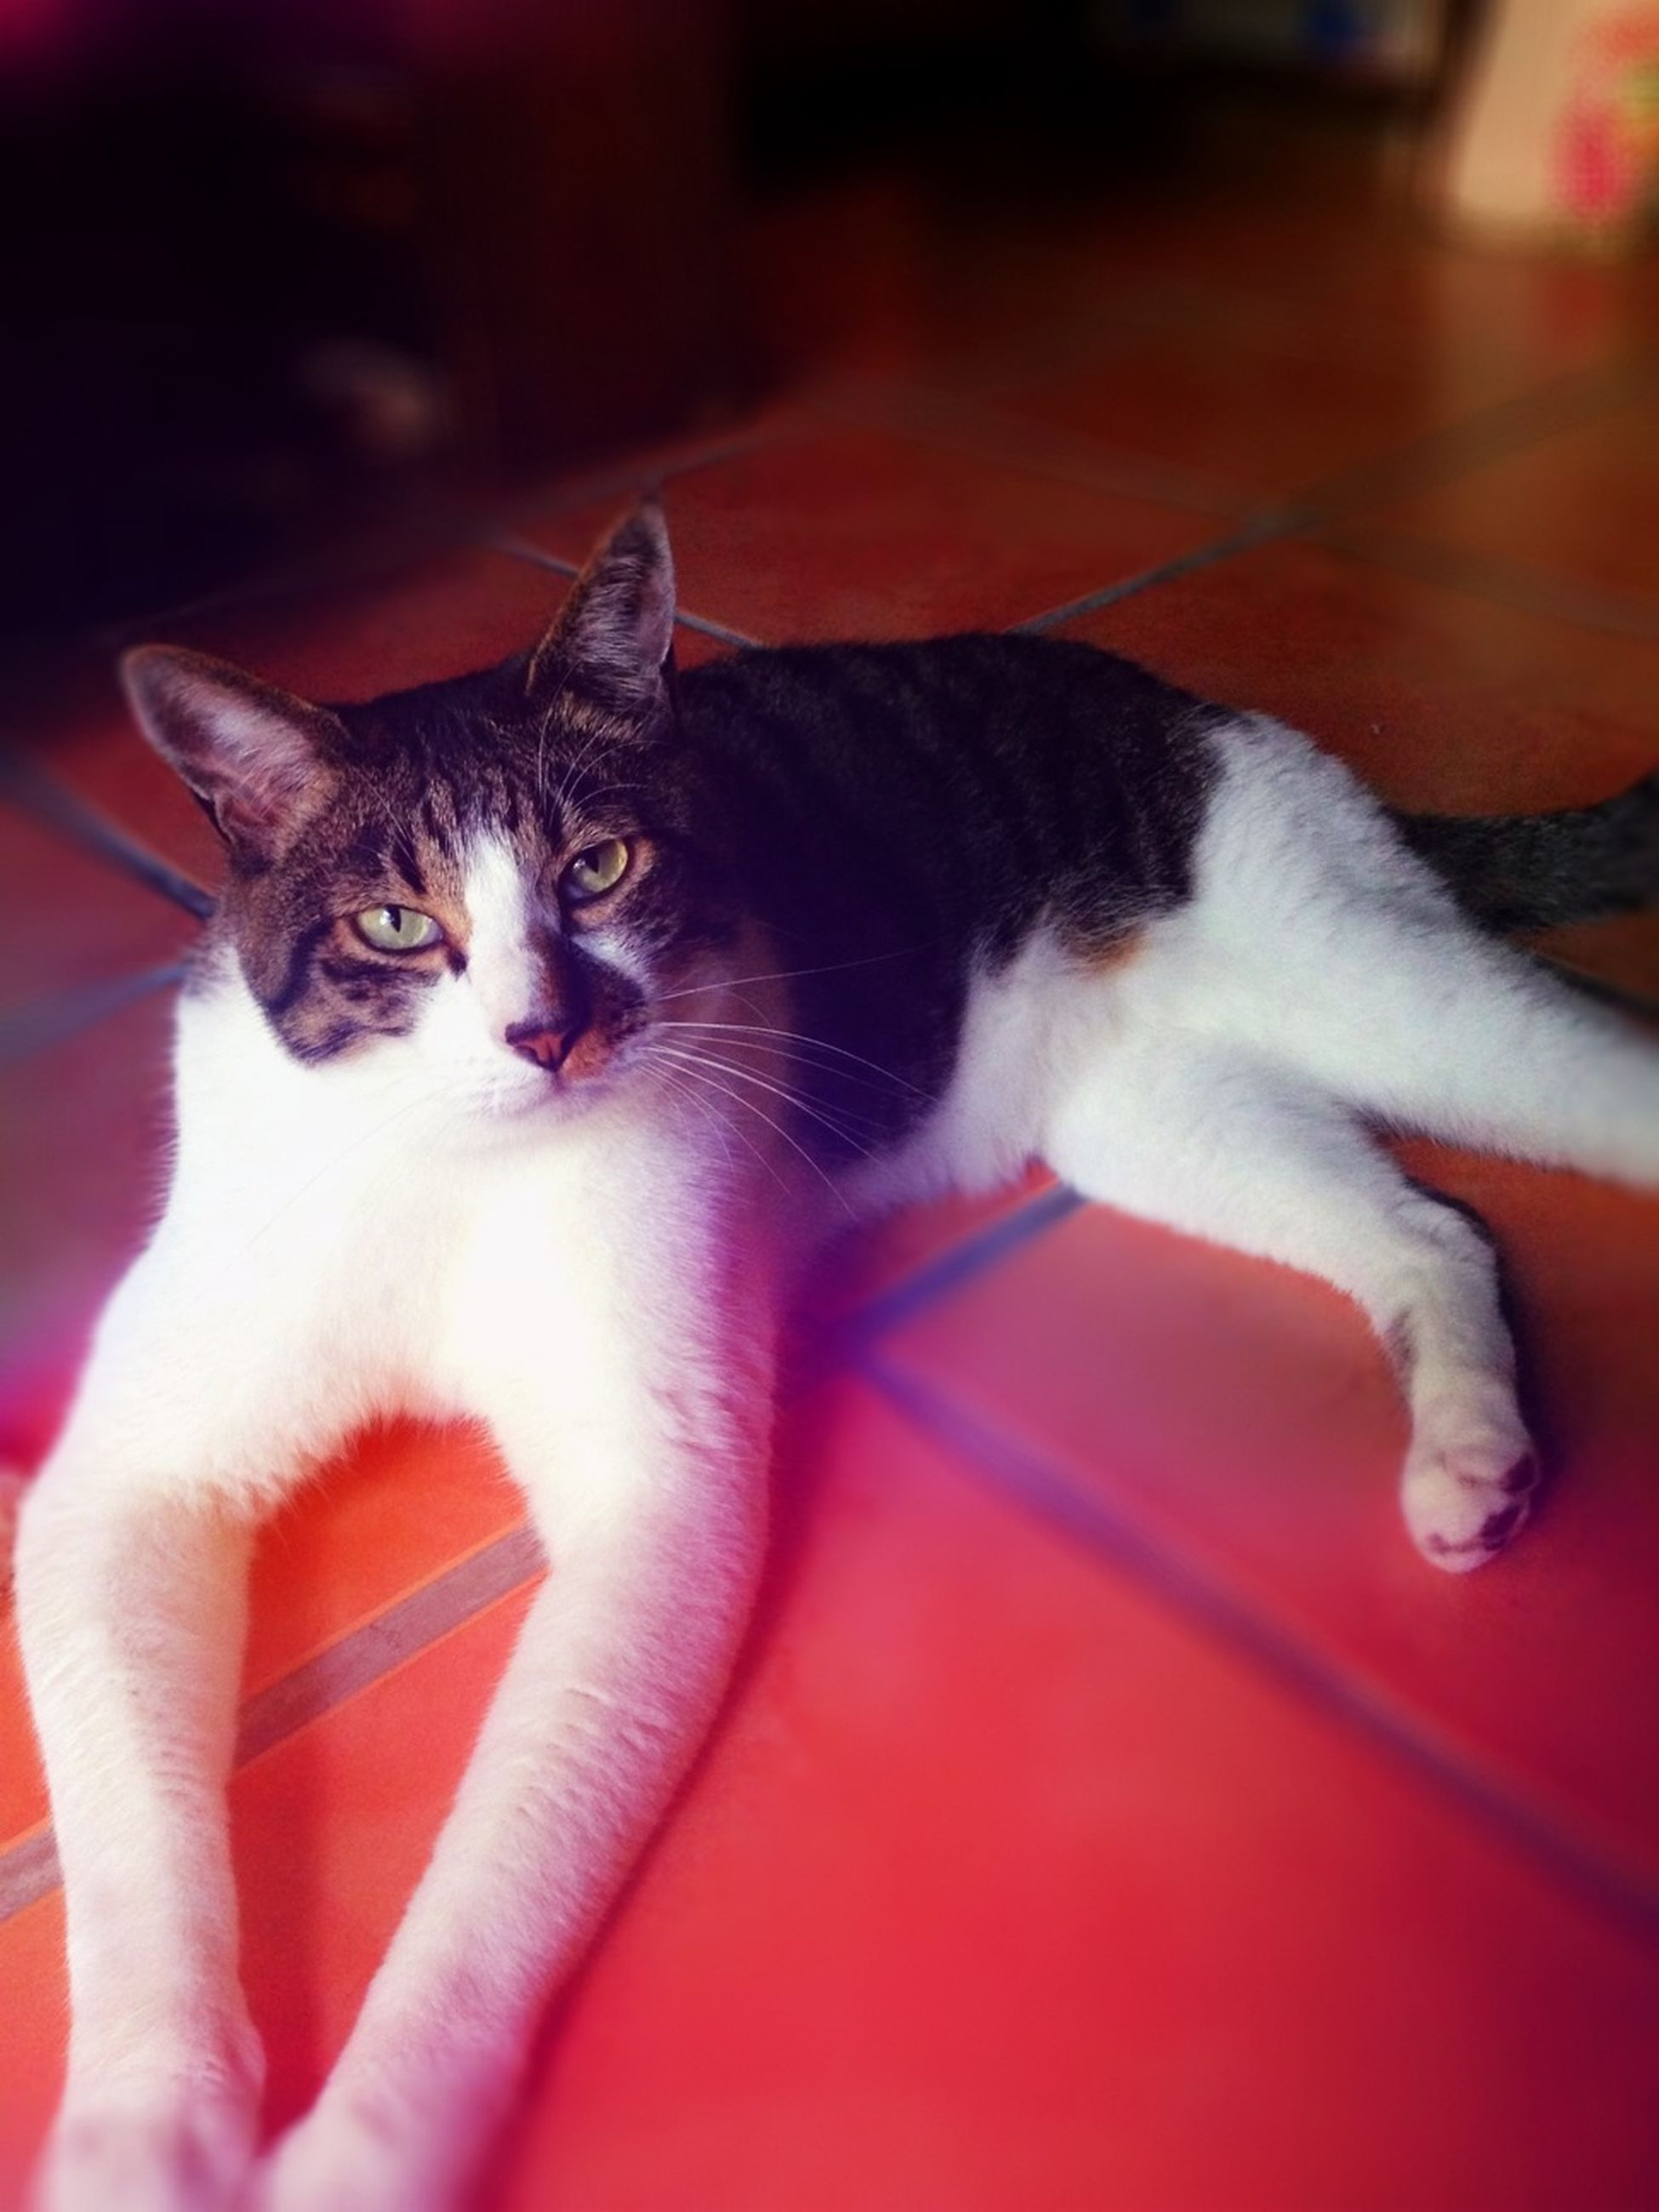 pets, domestic animals, domestic cat, animal themes, cat, mammal, one animal, indoors, feline, relaxation, whisker, lying down, home interior, looking at camera, portrait, resting, bed, sofa, two animals, close-up